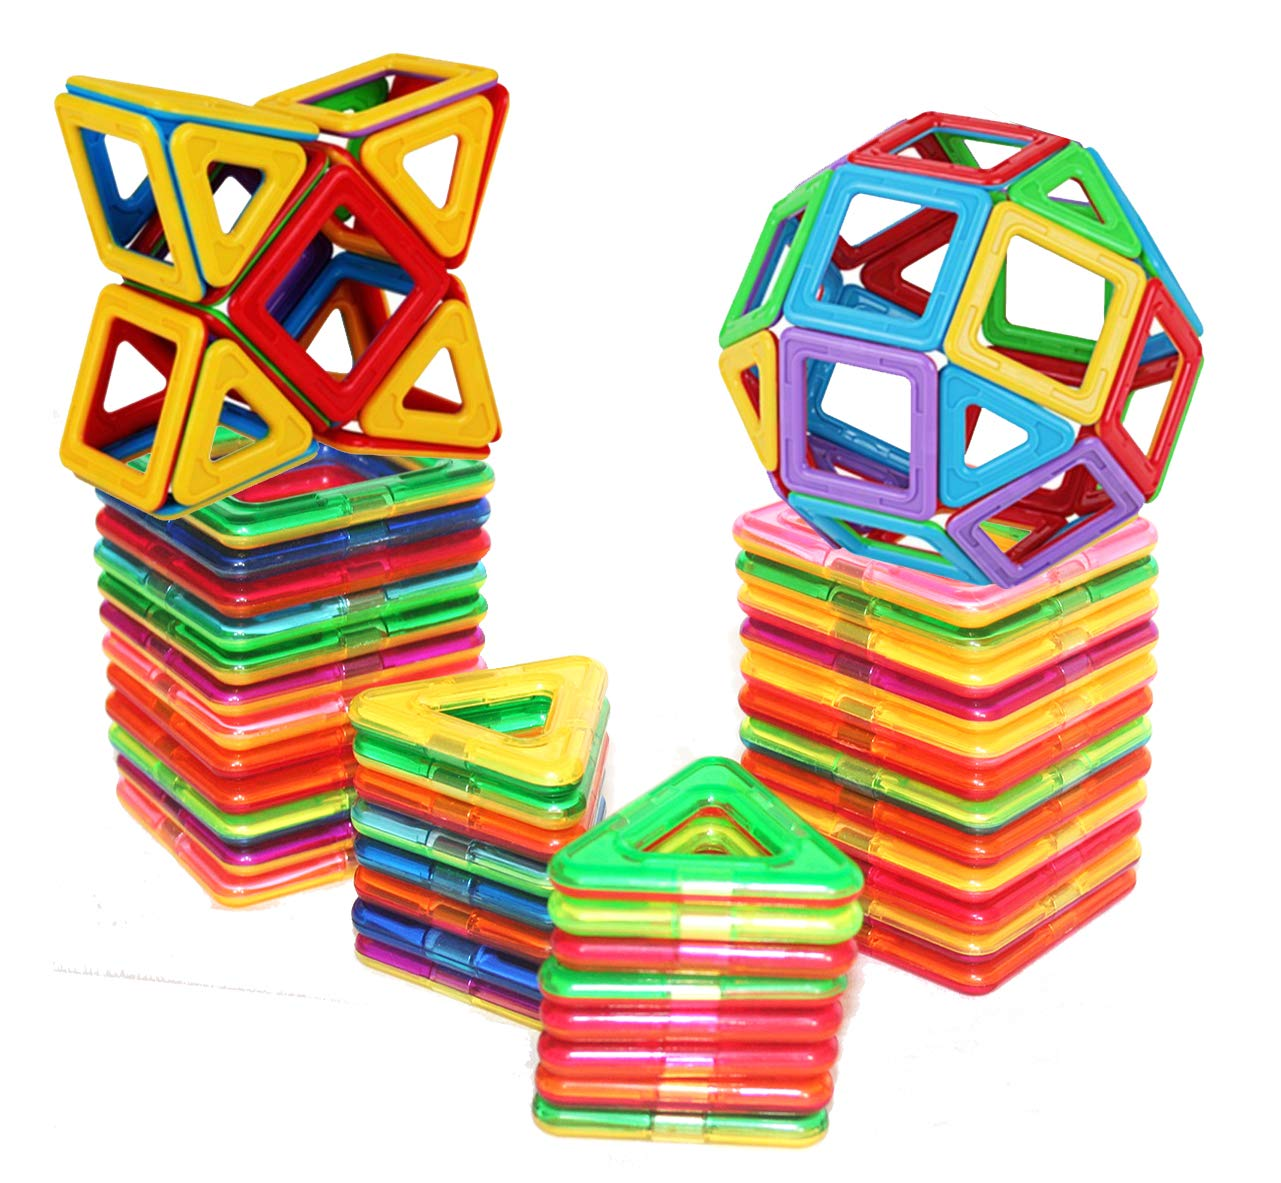 Magnetic Building Building Blocks Set, Magnet Educational Toys Magnetic Blocks Toys Set For Kids and Adult,... by Toygungle